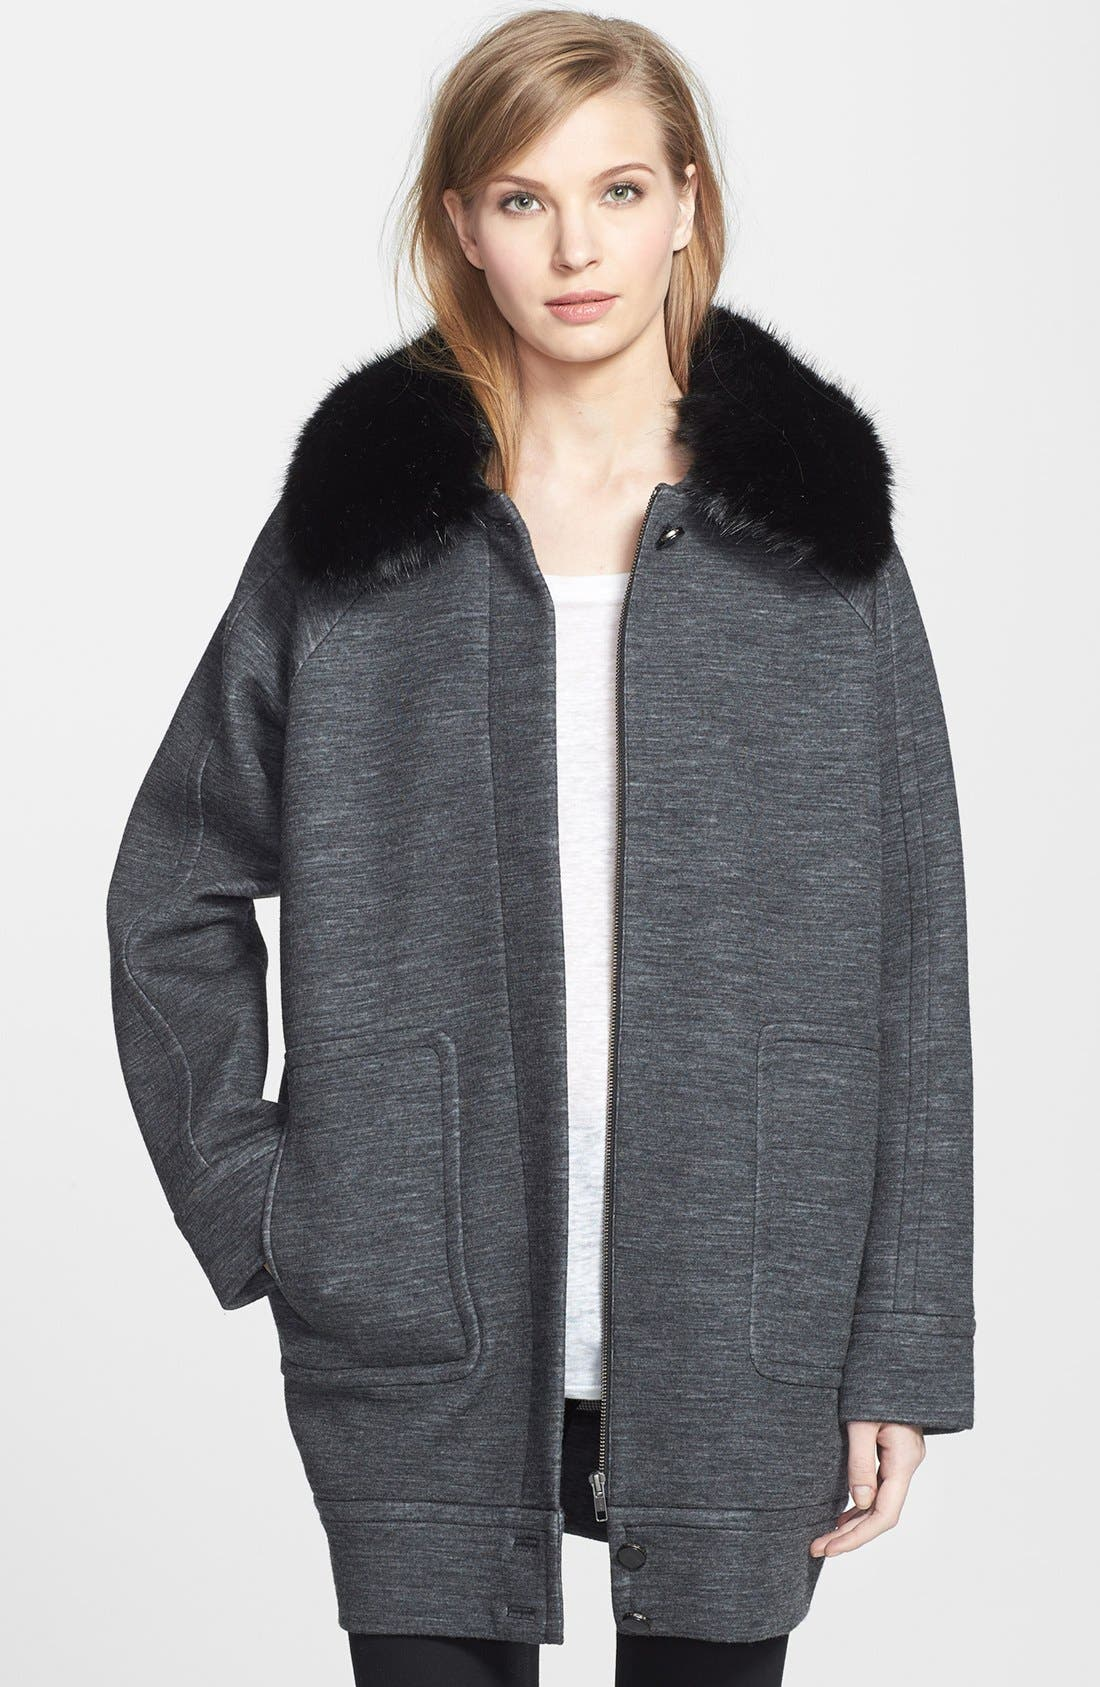 Main Image - MARC BY MARC JACOBS 'Gertrude' Faux Fur & Double Face Wool Blend Coat